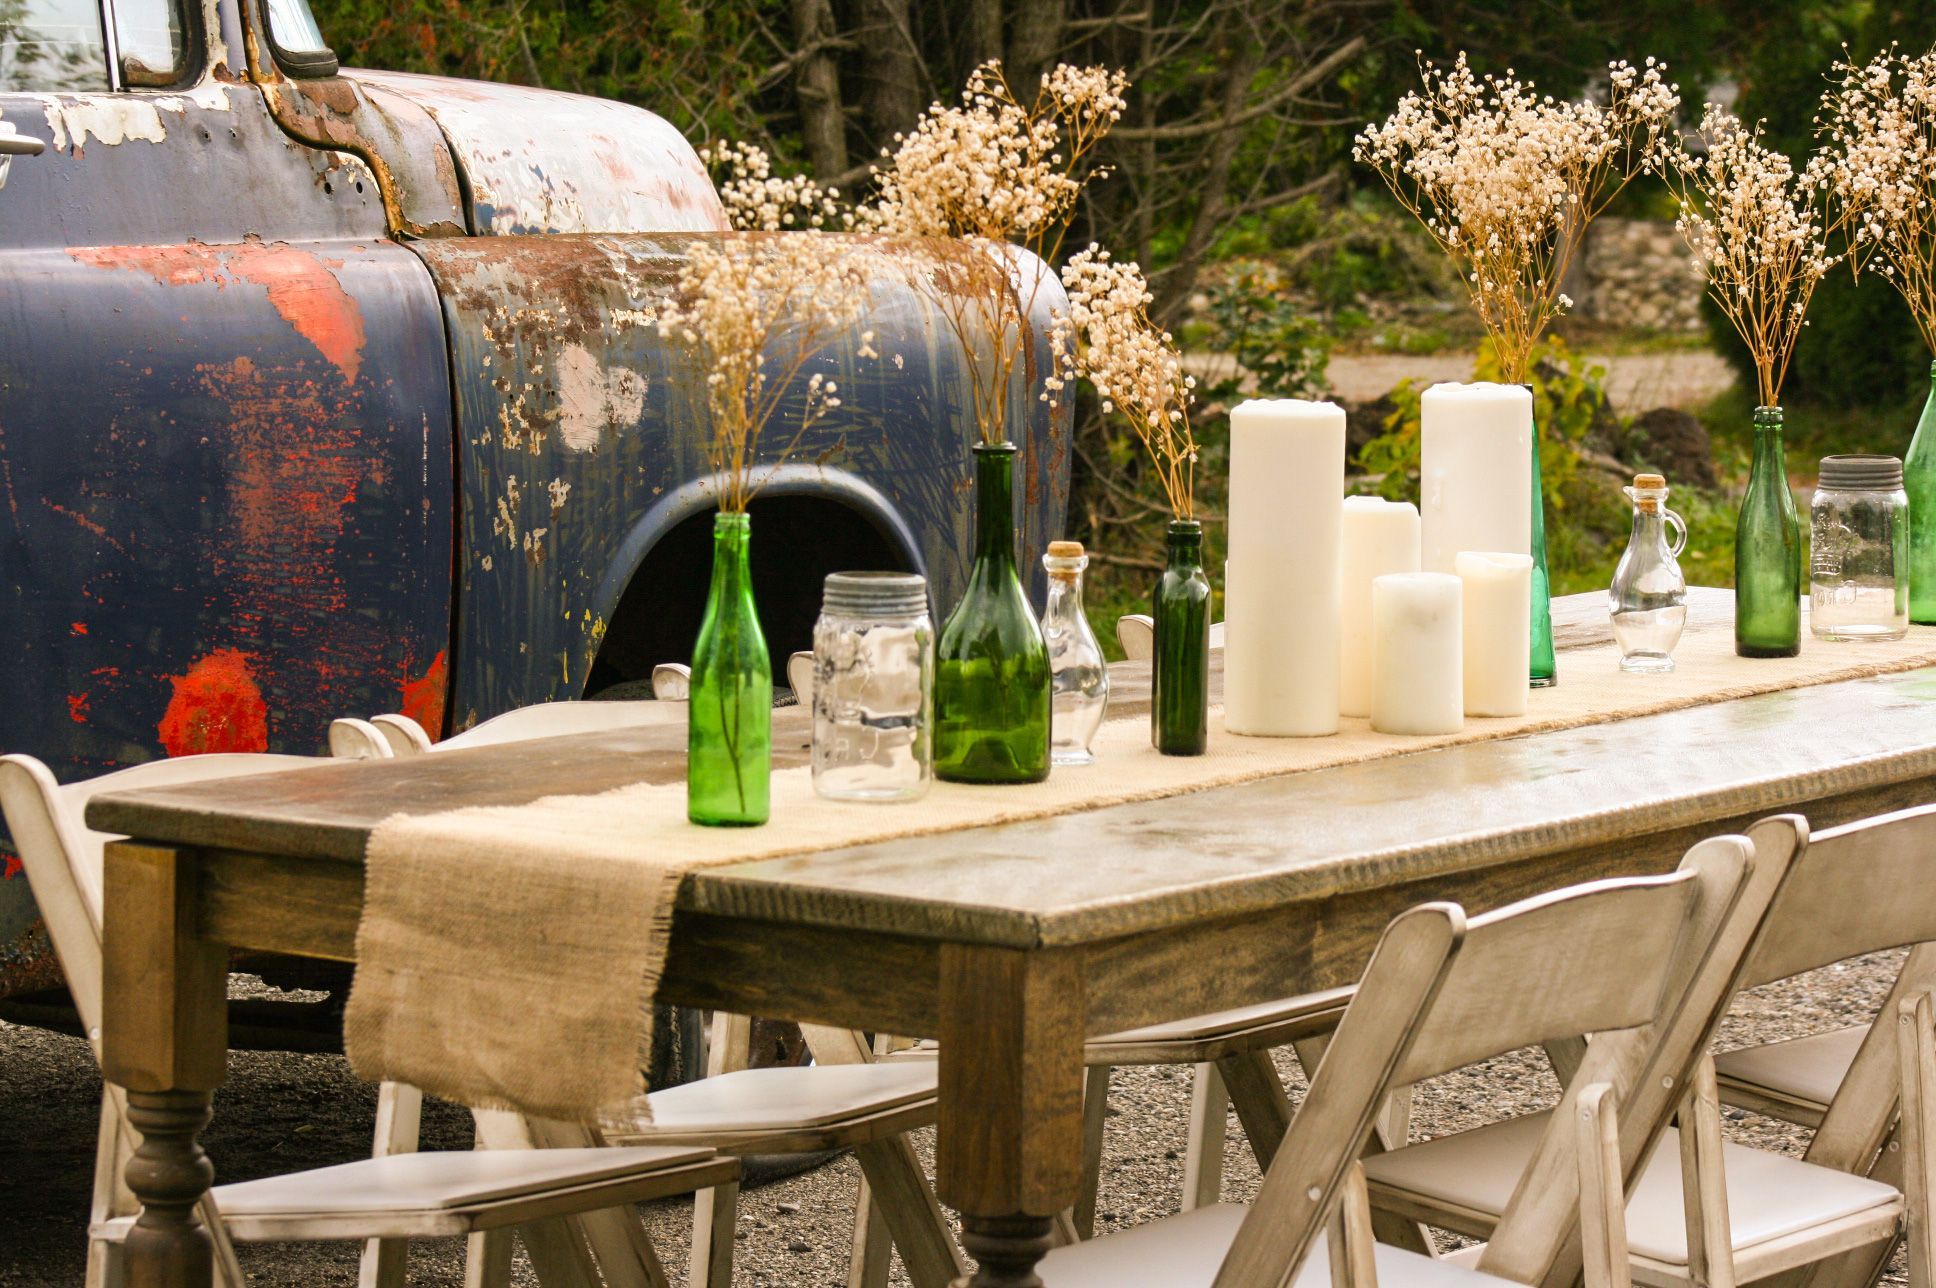 Harvest Table And Shabby Chic Chairs. Burlap Table Runner, With Vintage  Green Bottles,